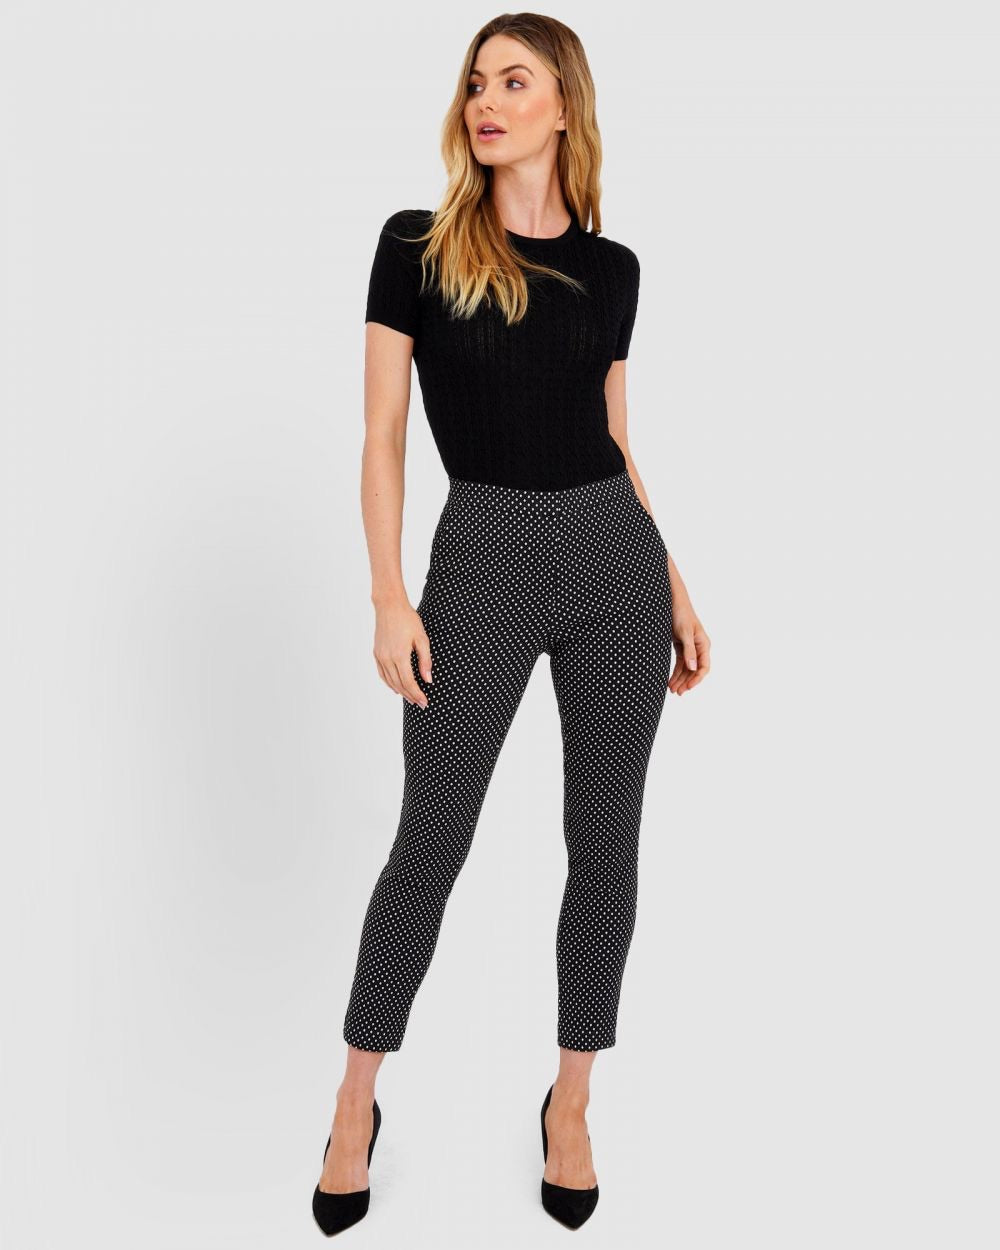 Raven Stretch Pants